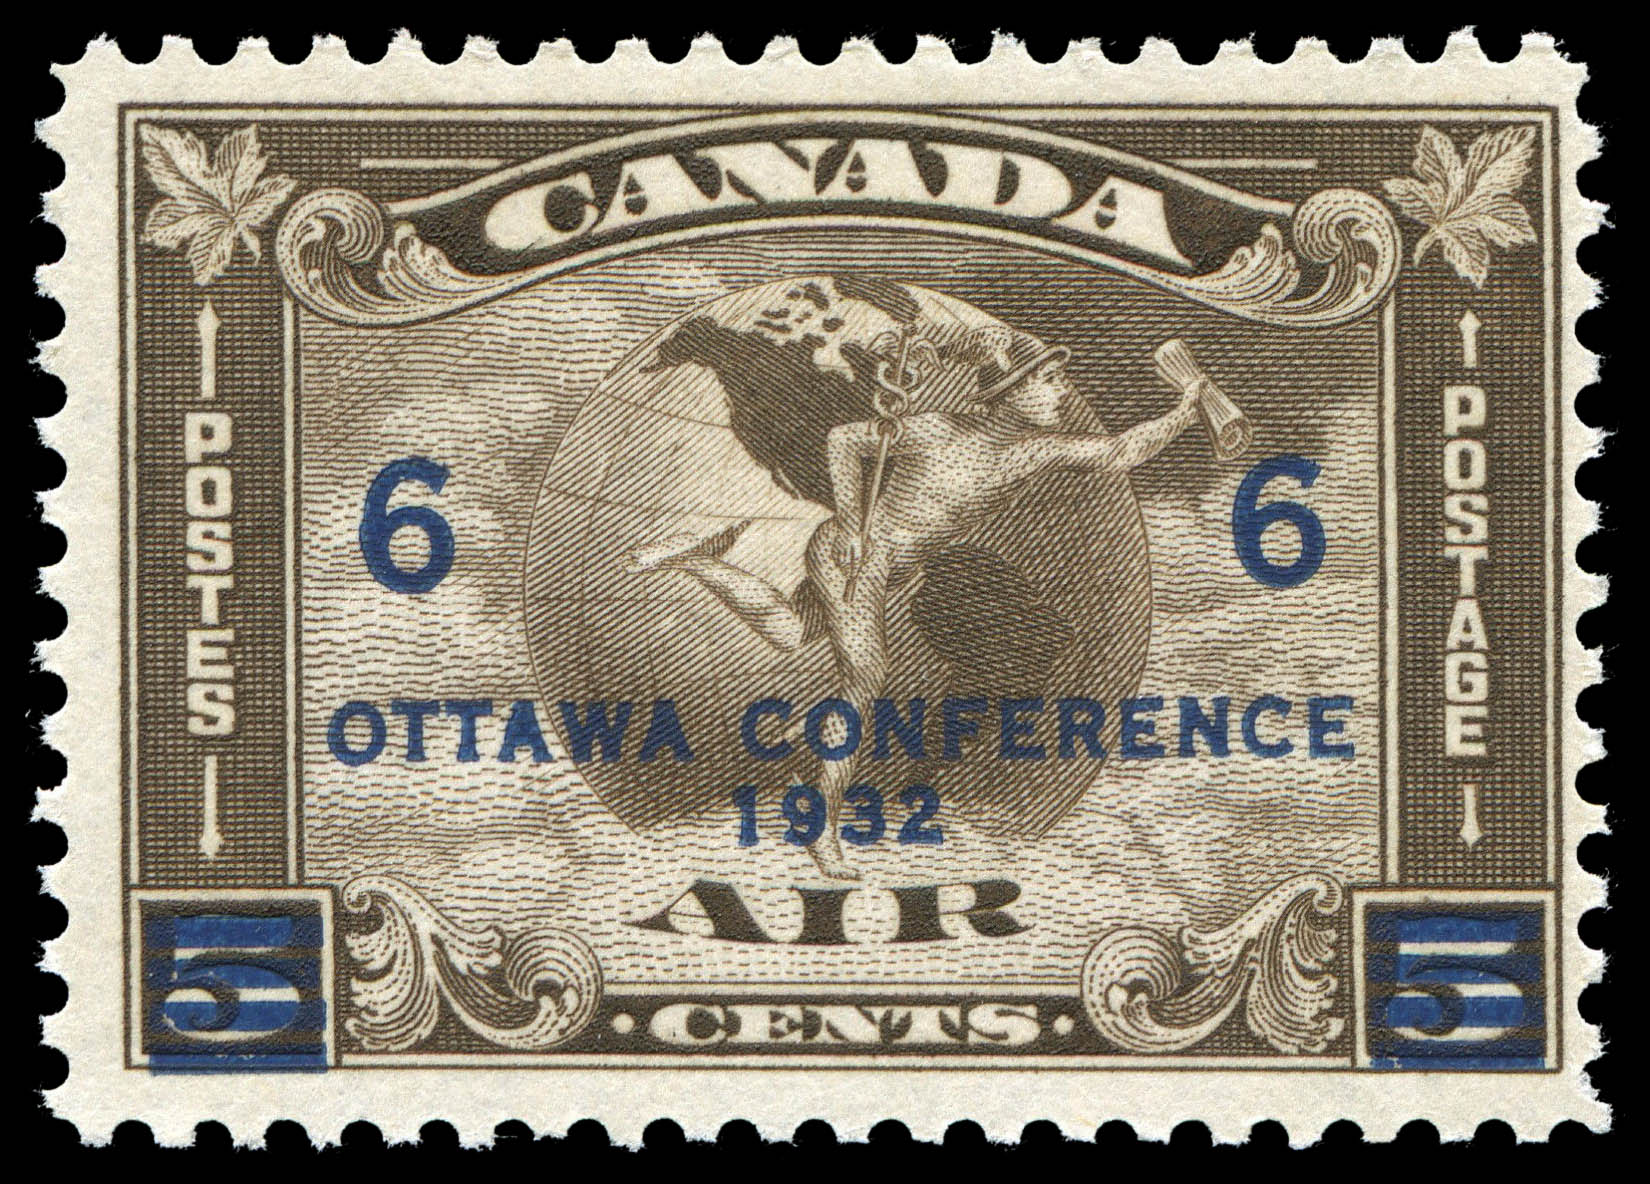 Air, Mercury Canada Postage Stamp